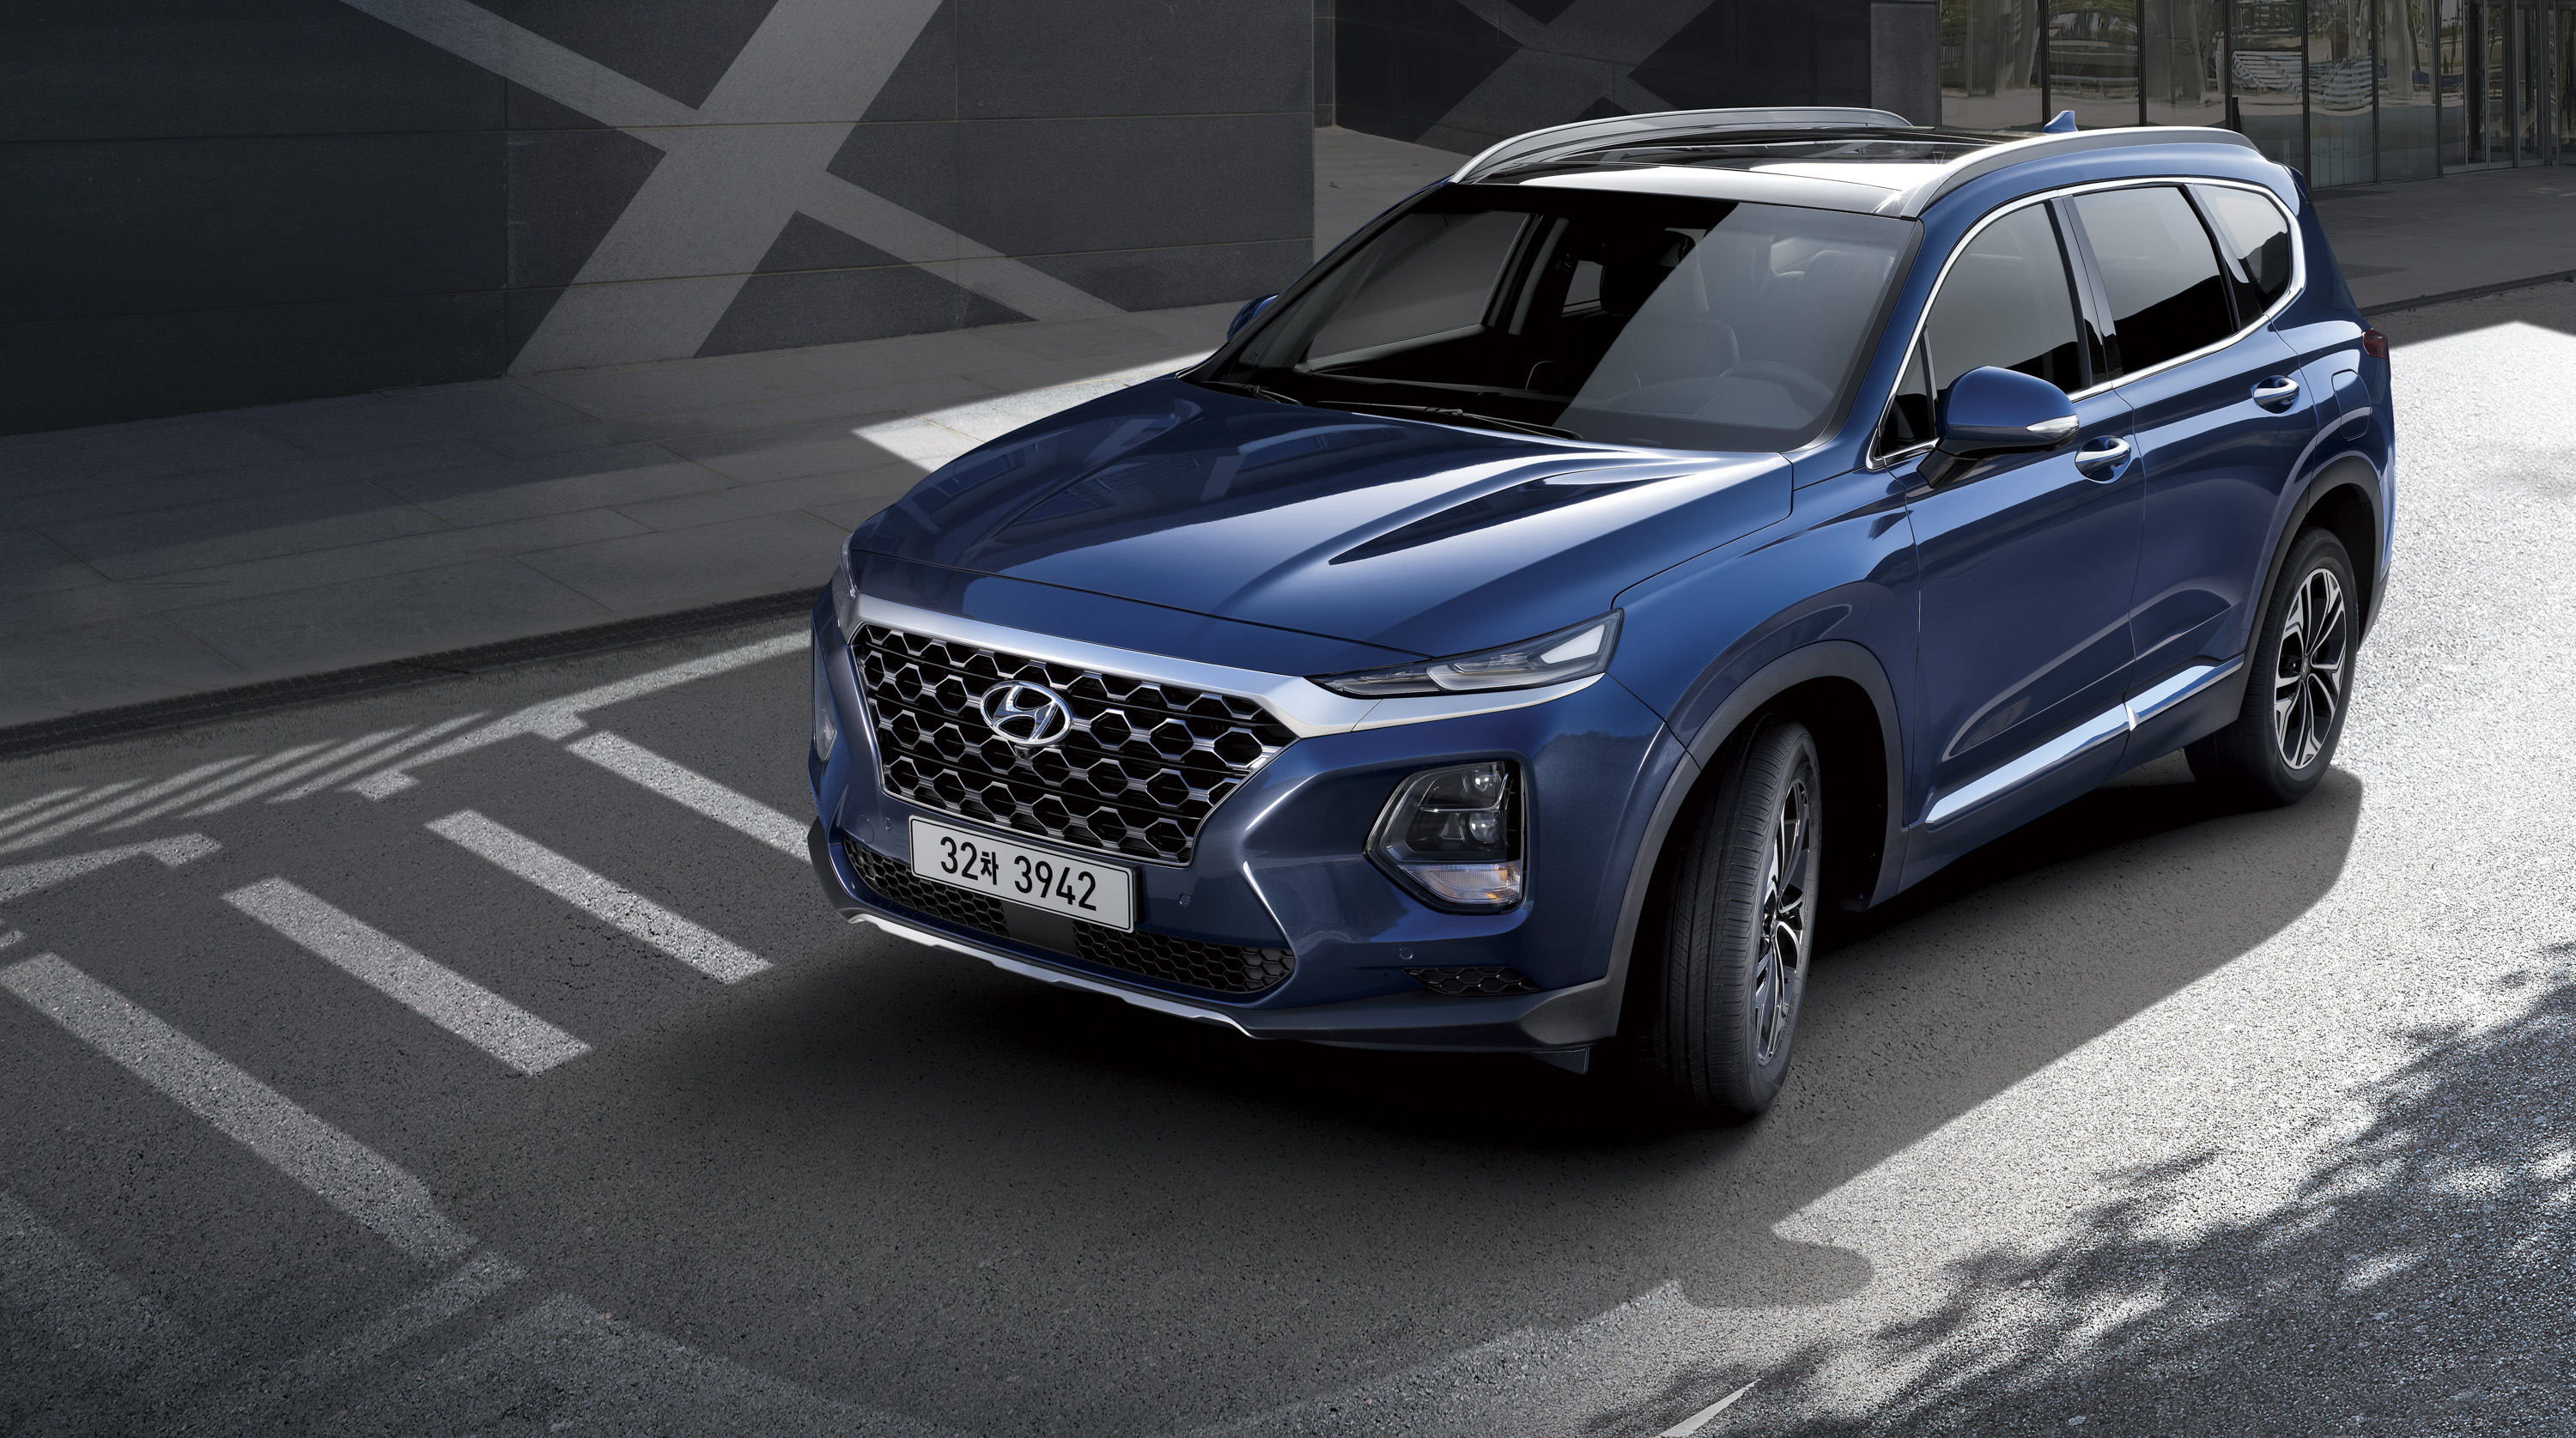 2019 hyundai santa fe review top speed. Black Bedroom Furniture Sets. Home Design Ideas